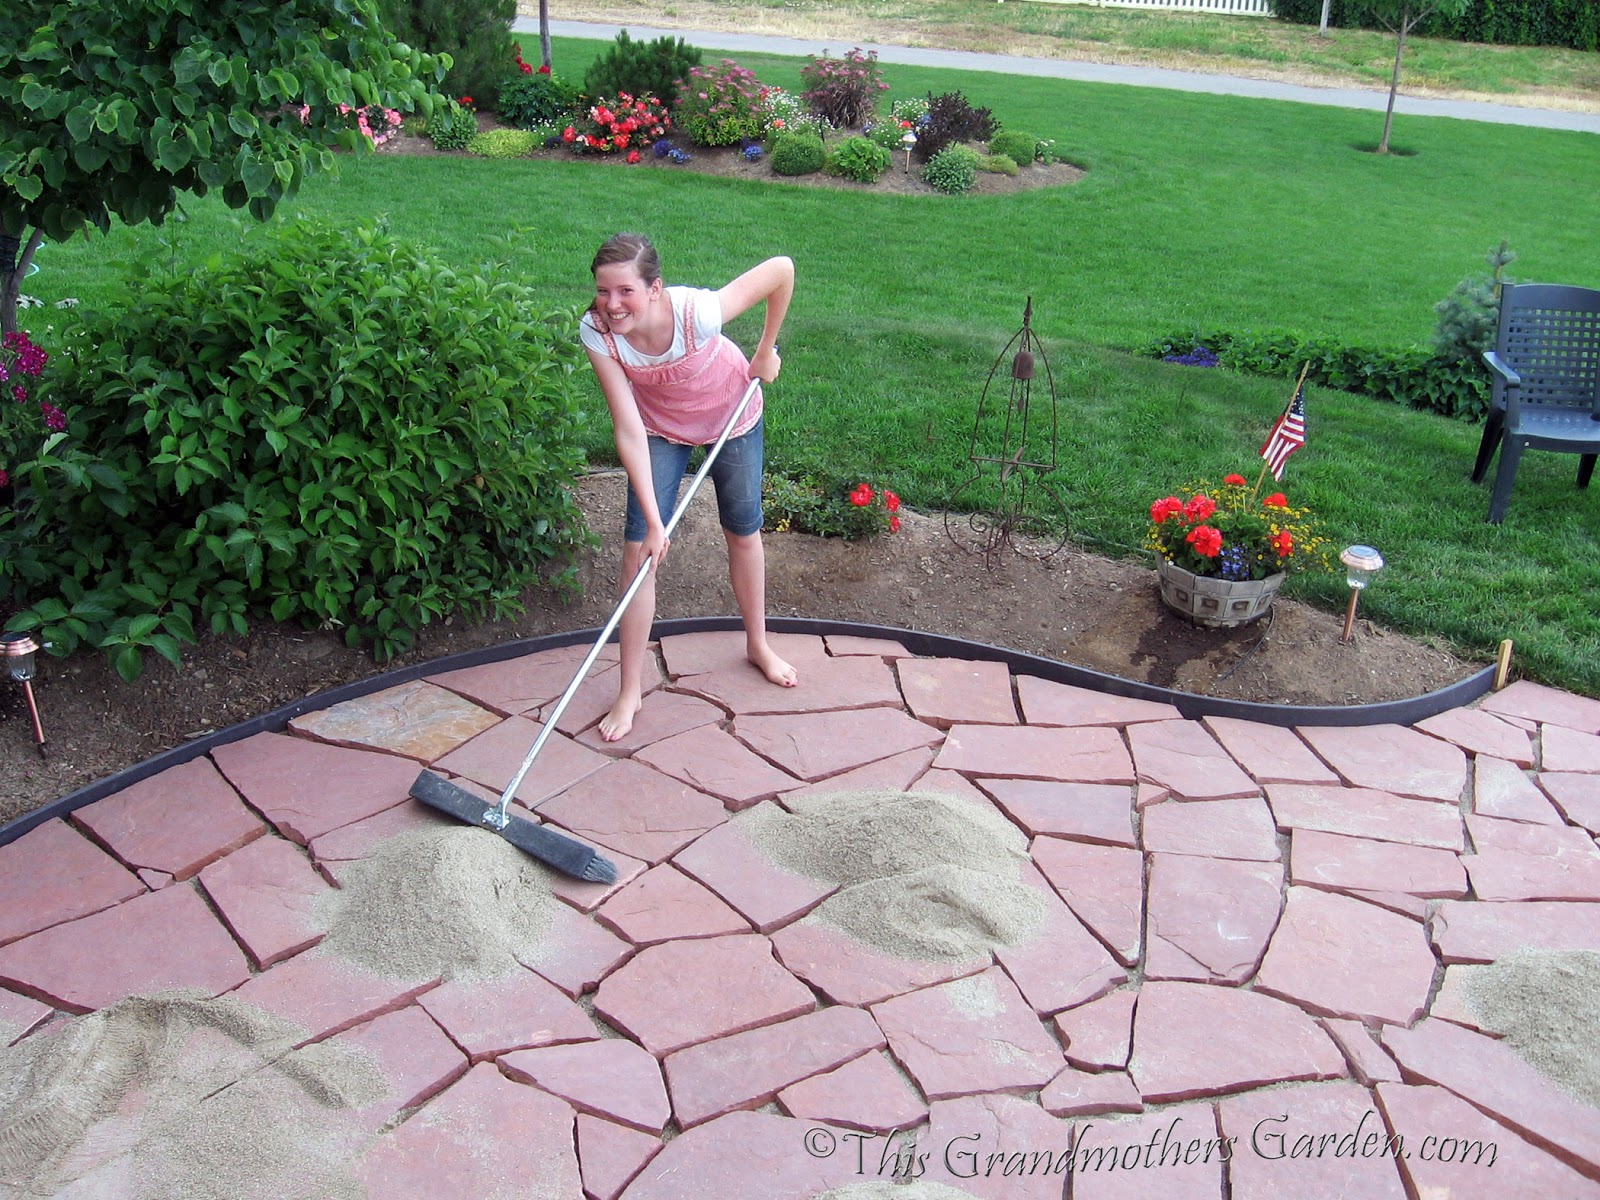 Merveilleux Filling In The Gaps: Part 3 Of Our DIY Flagstone Patio